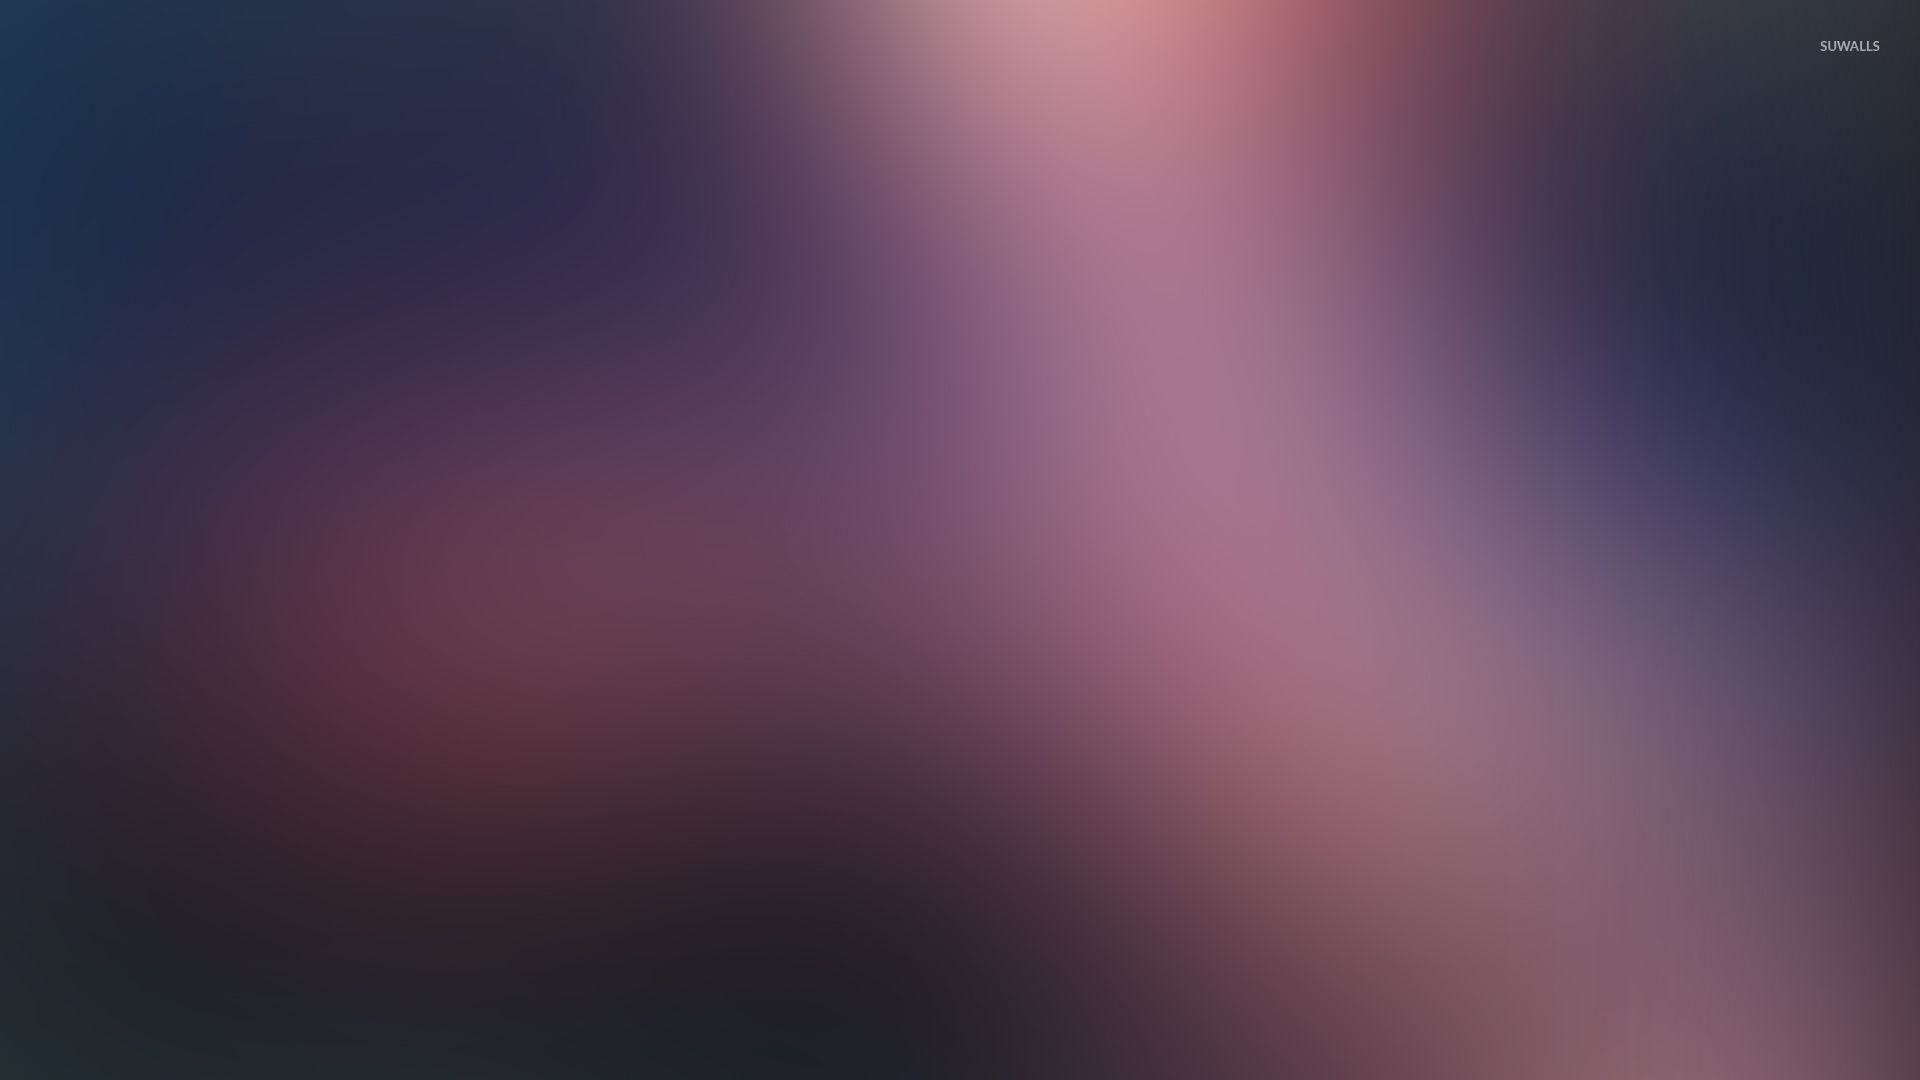 blur wallpapers free - photo #38